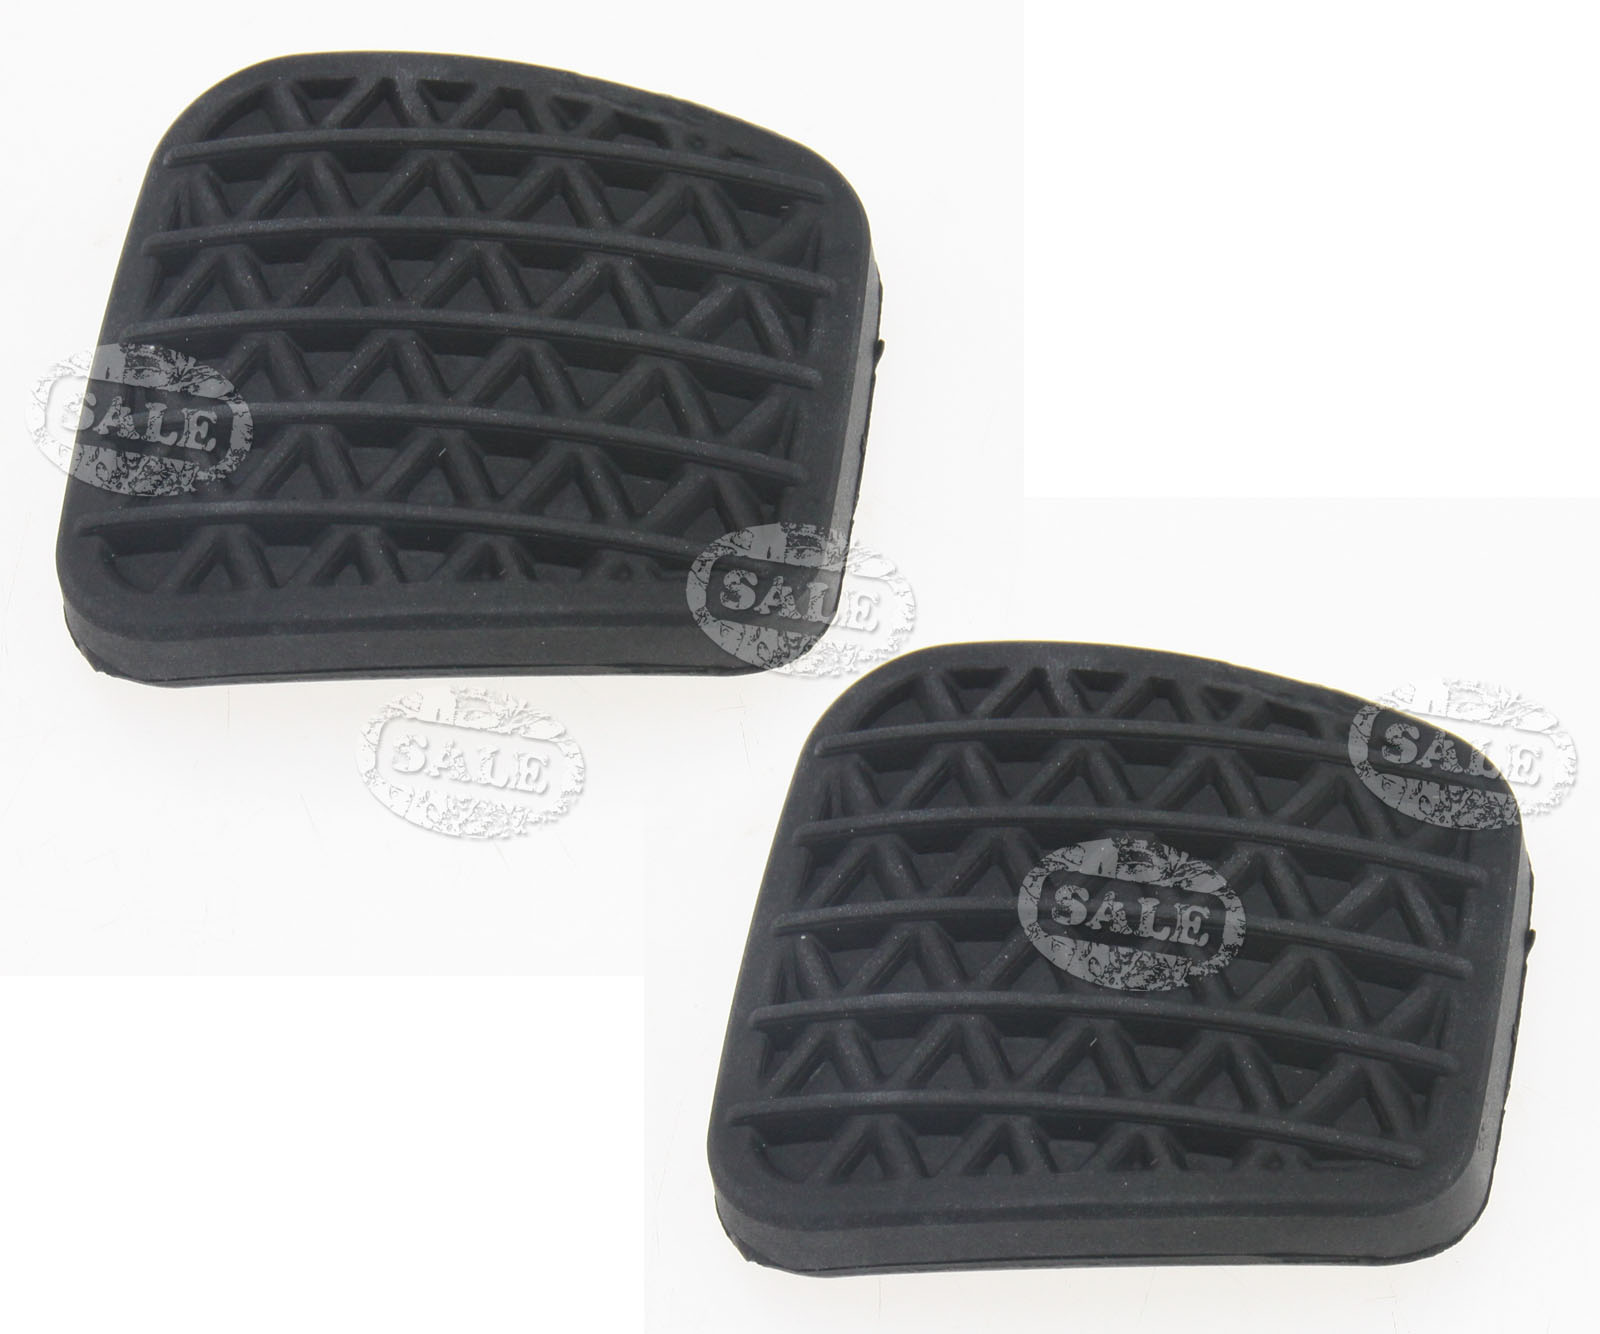 Clutch Pad Material : Pcs clutch or brake pedal pad rubber cover black for